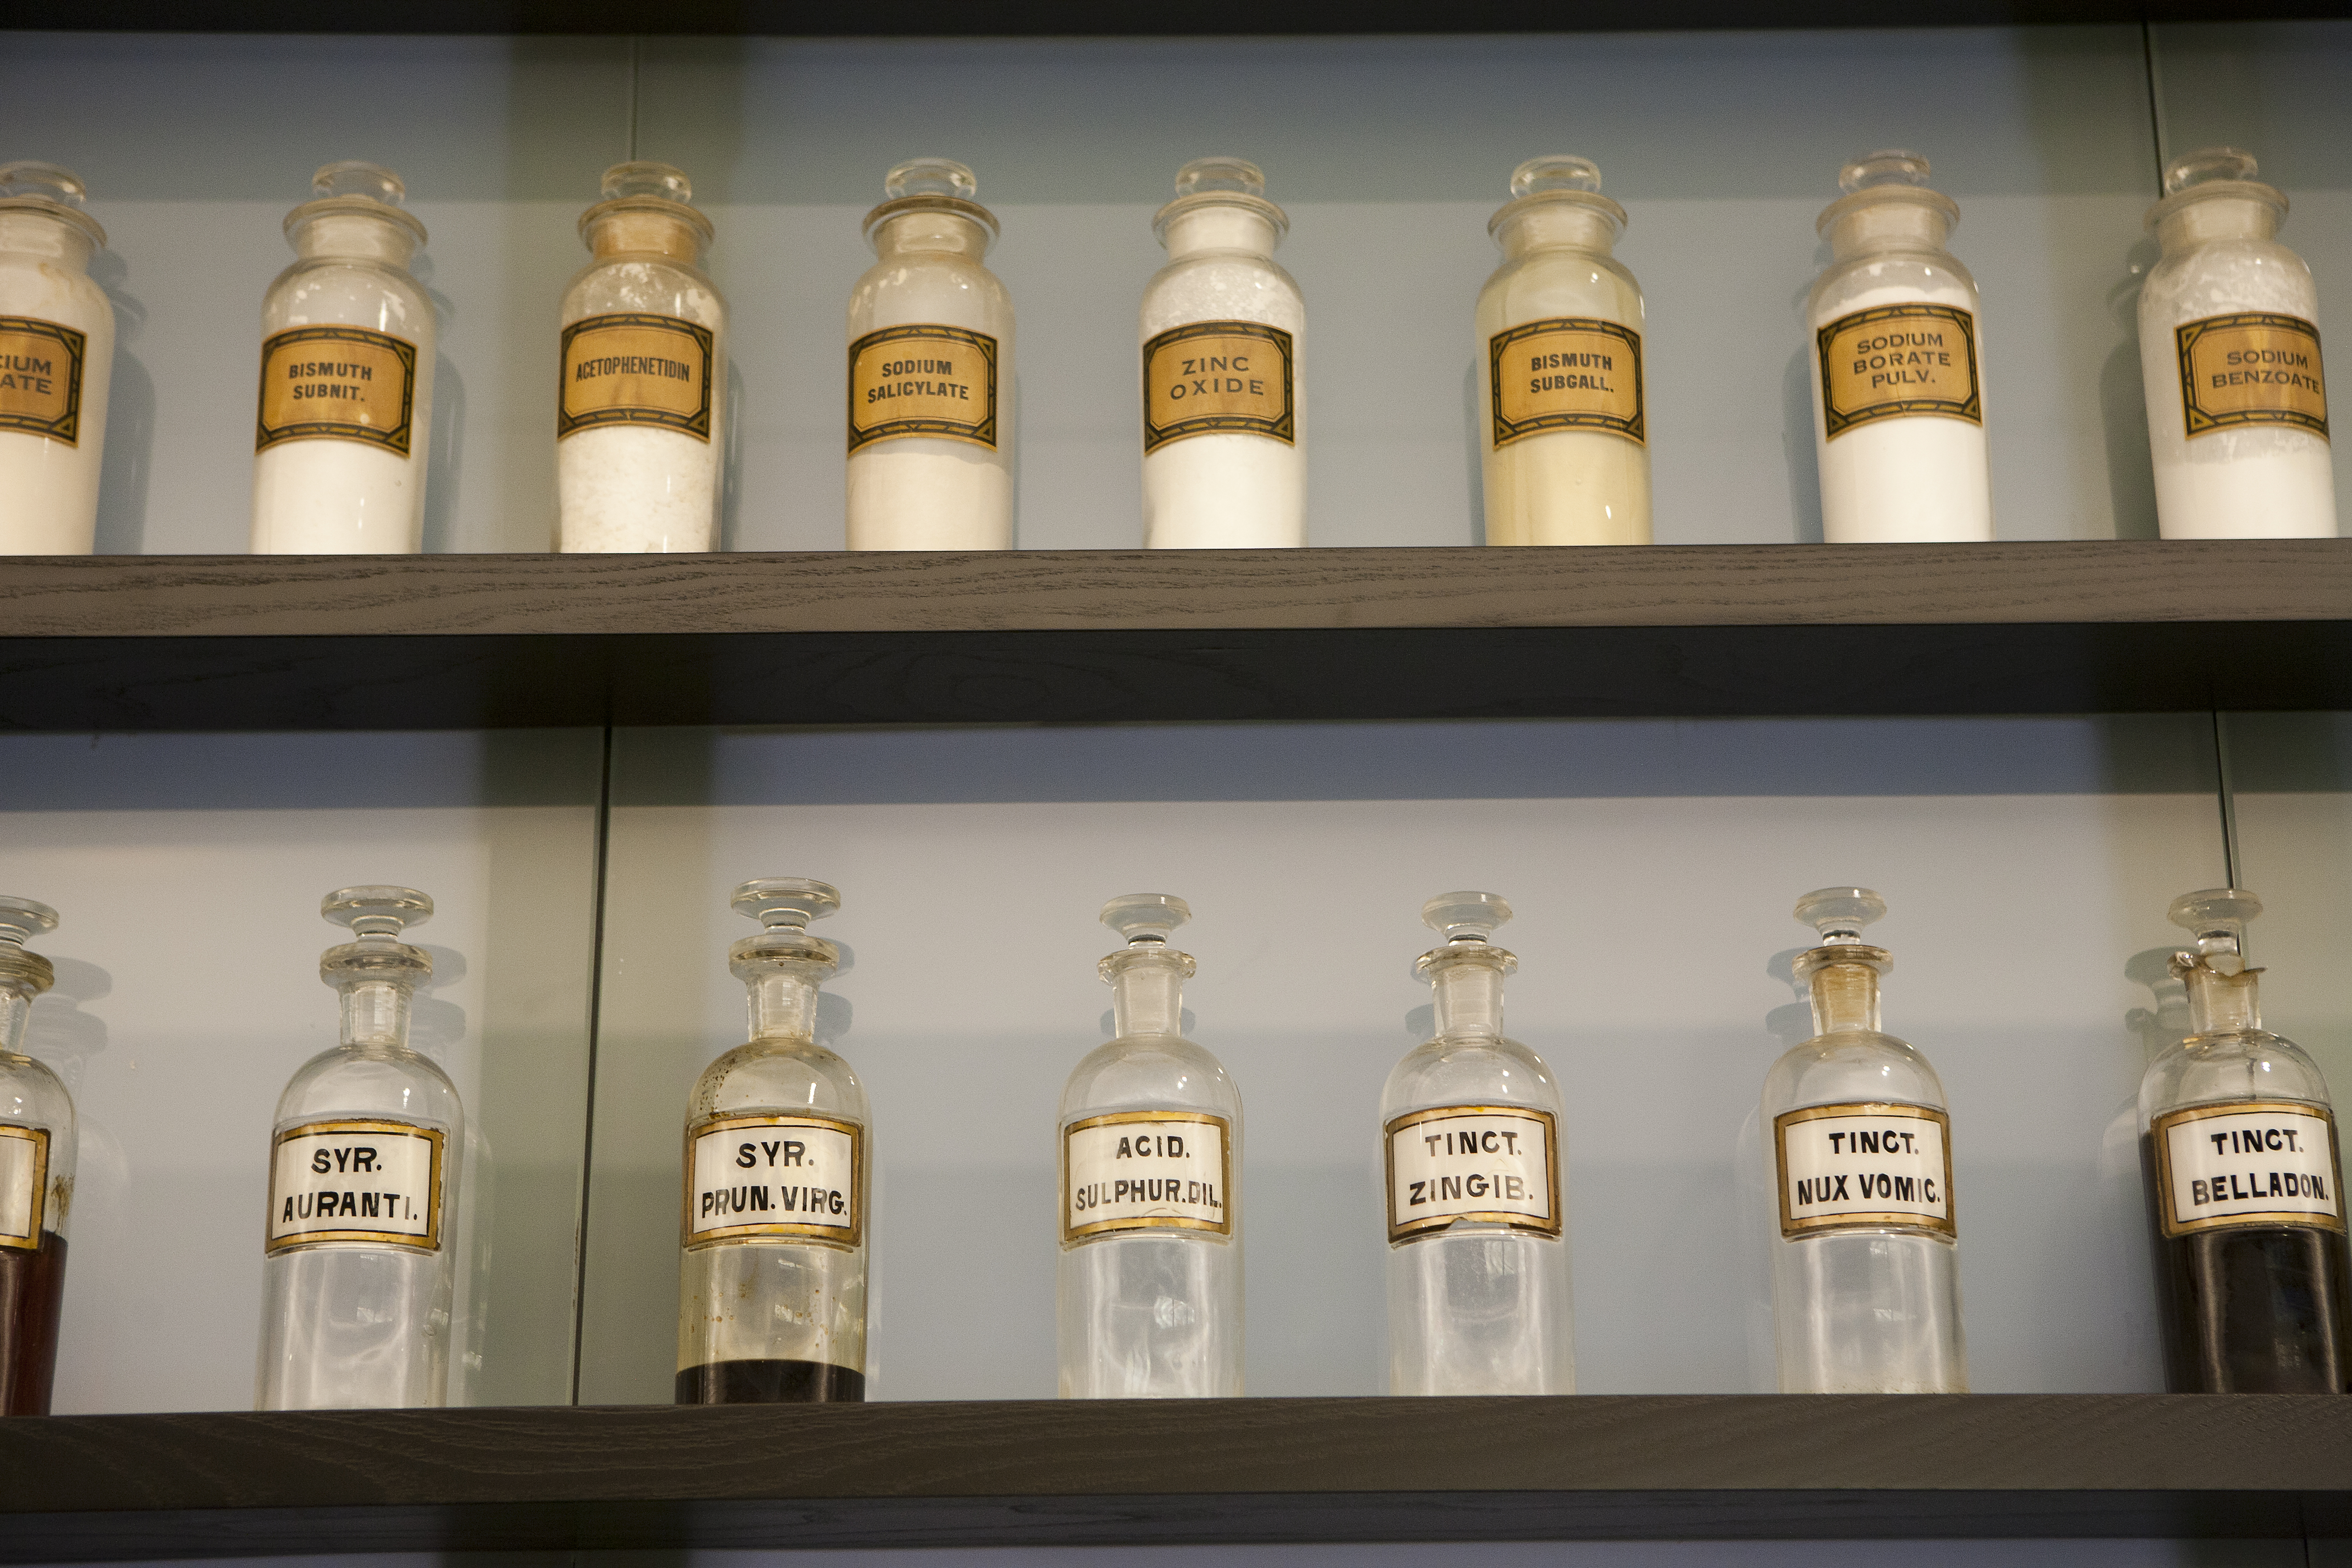 A display of antique medicine jars at the Pharmacy/Biology building